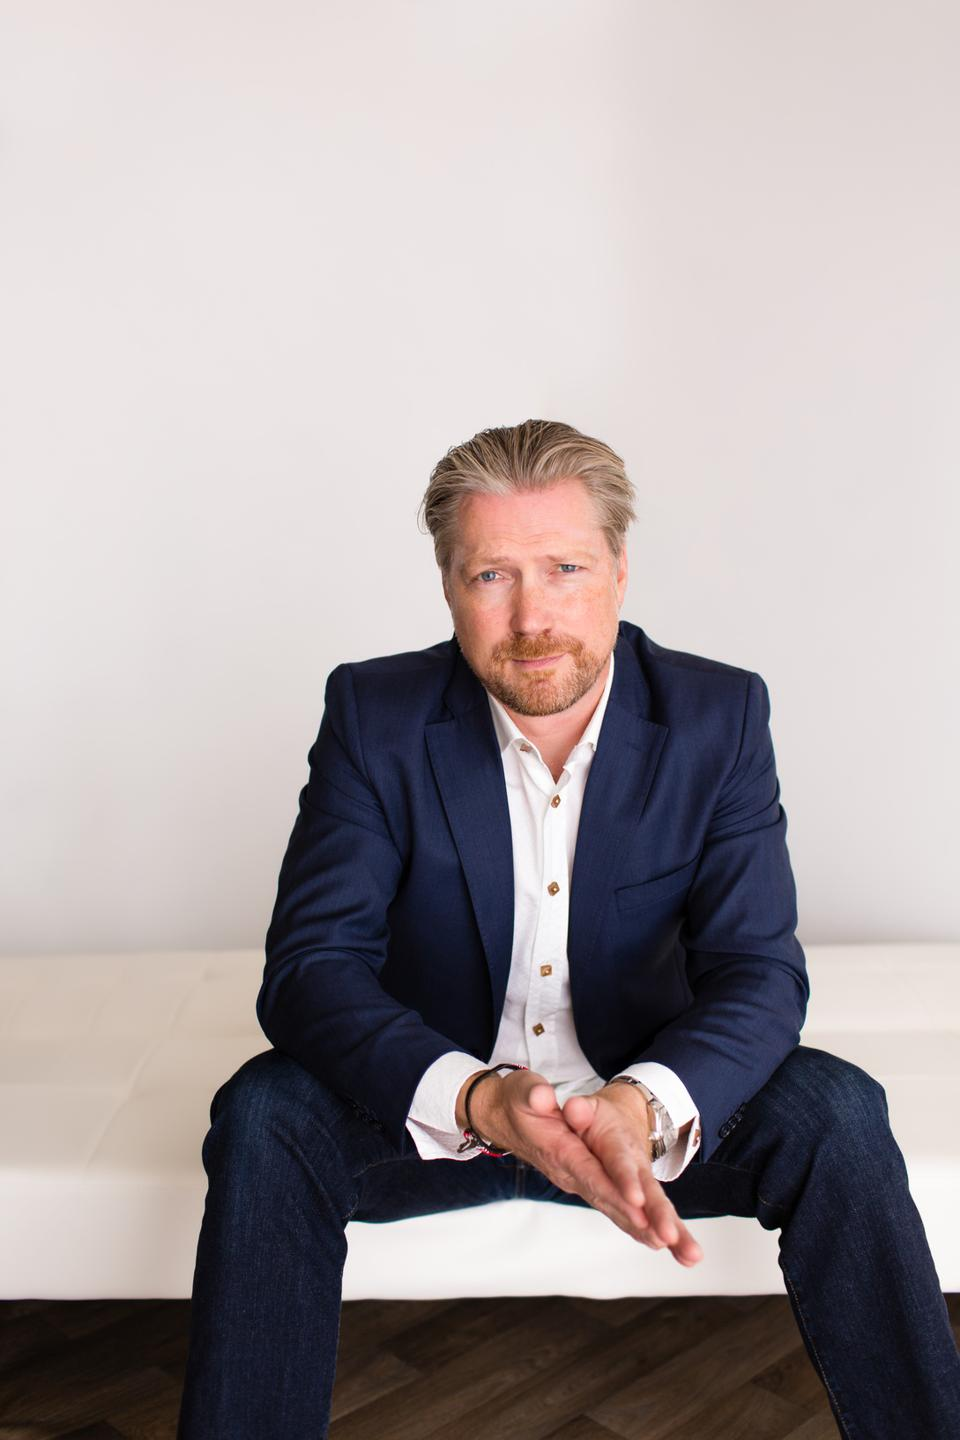 Henrik Johansson, co-founder and CEO of Gembah